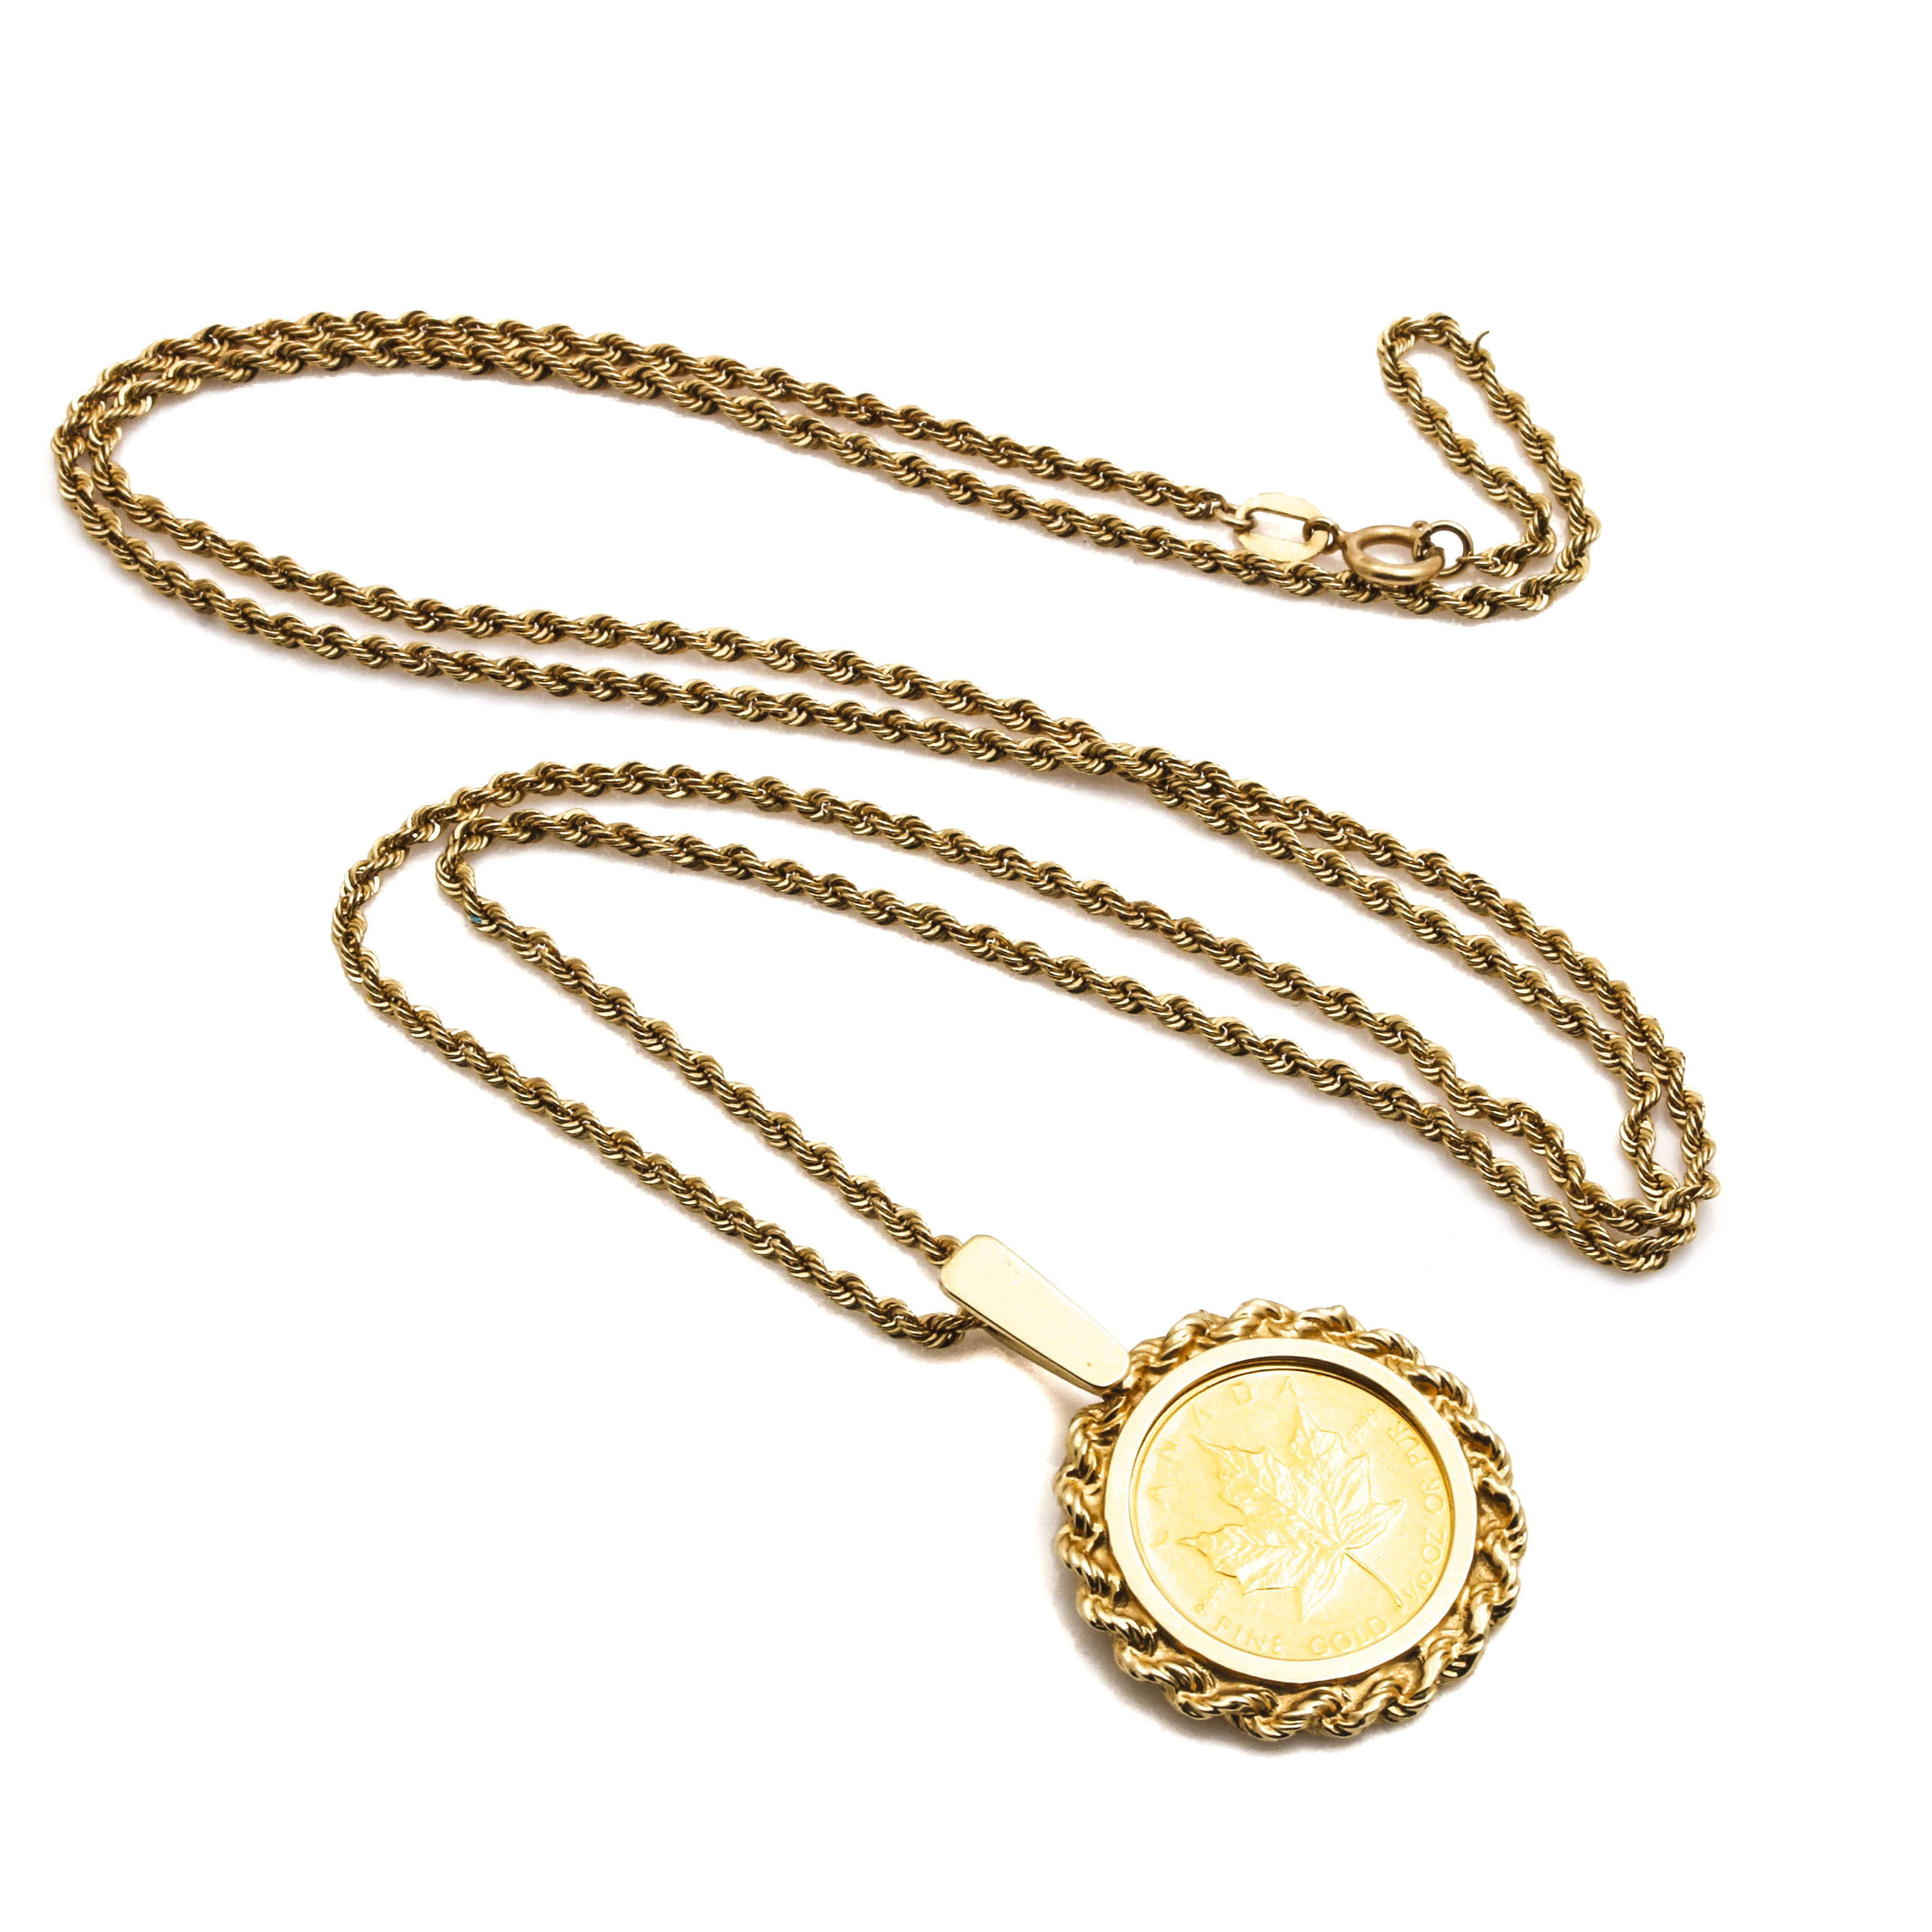 1985 24K Yellow Gold Canadian 5 Dollar Maple Leaf Coin Pendant With 14K Necklace